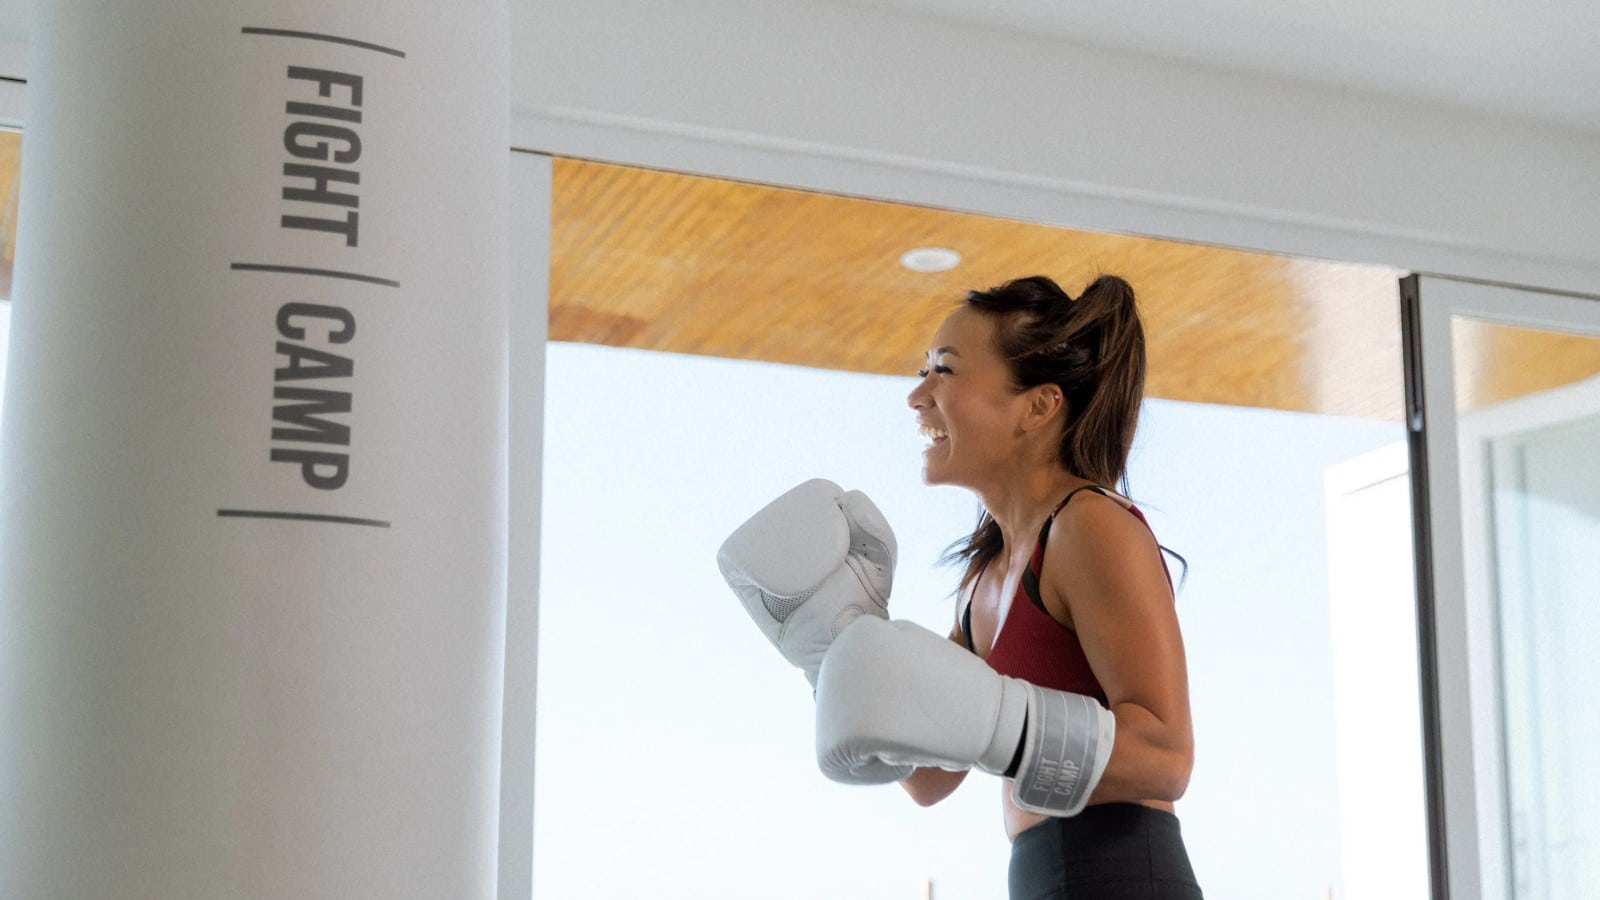 fightcamp boxing bag being used for fitness